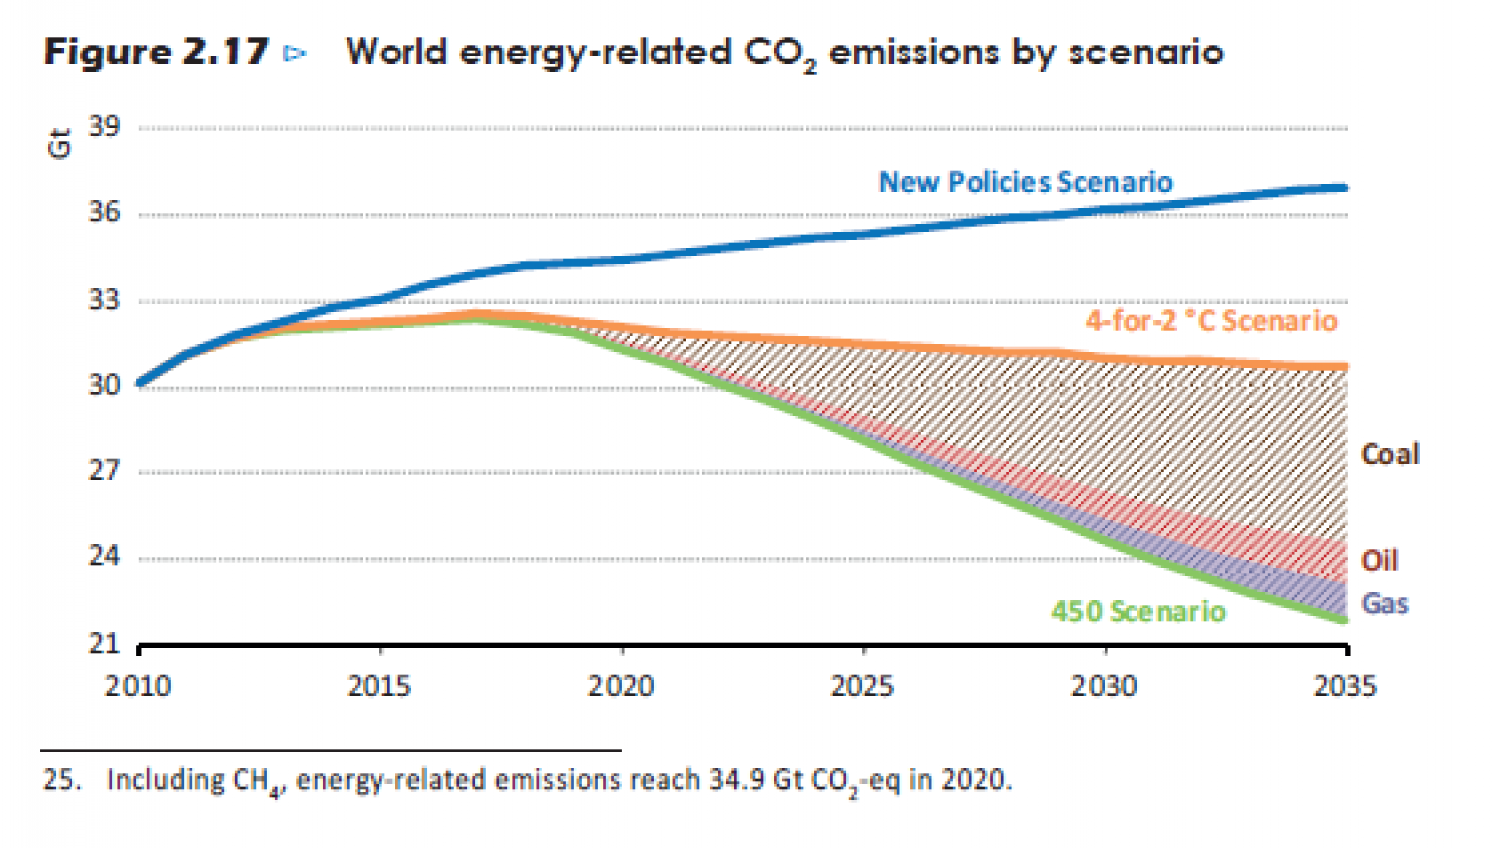 World energy-related CO2 emissions by scenario Infographic